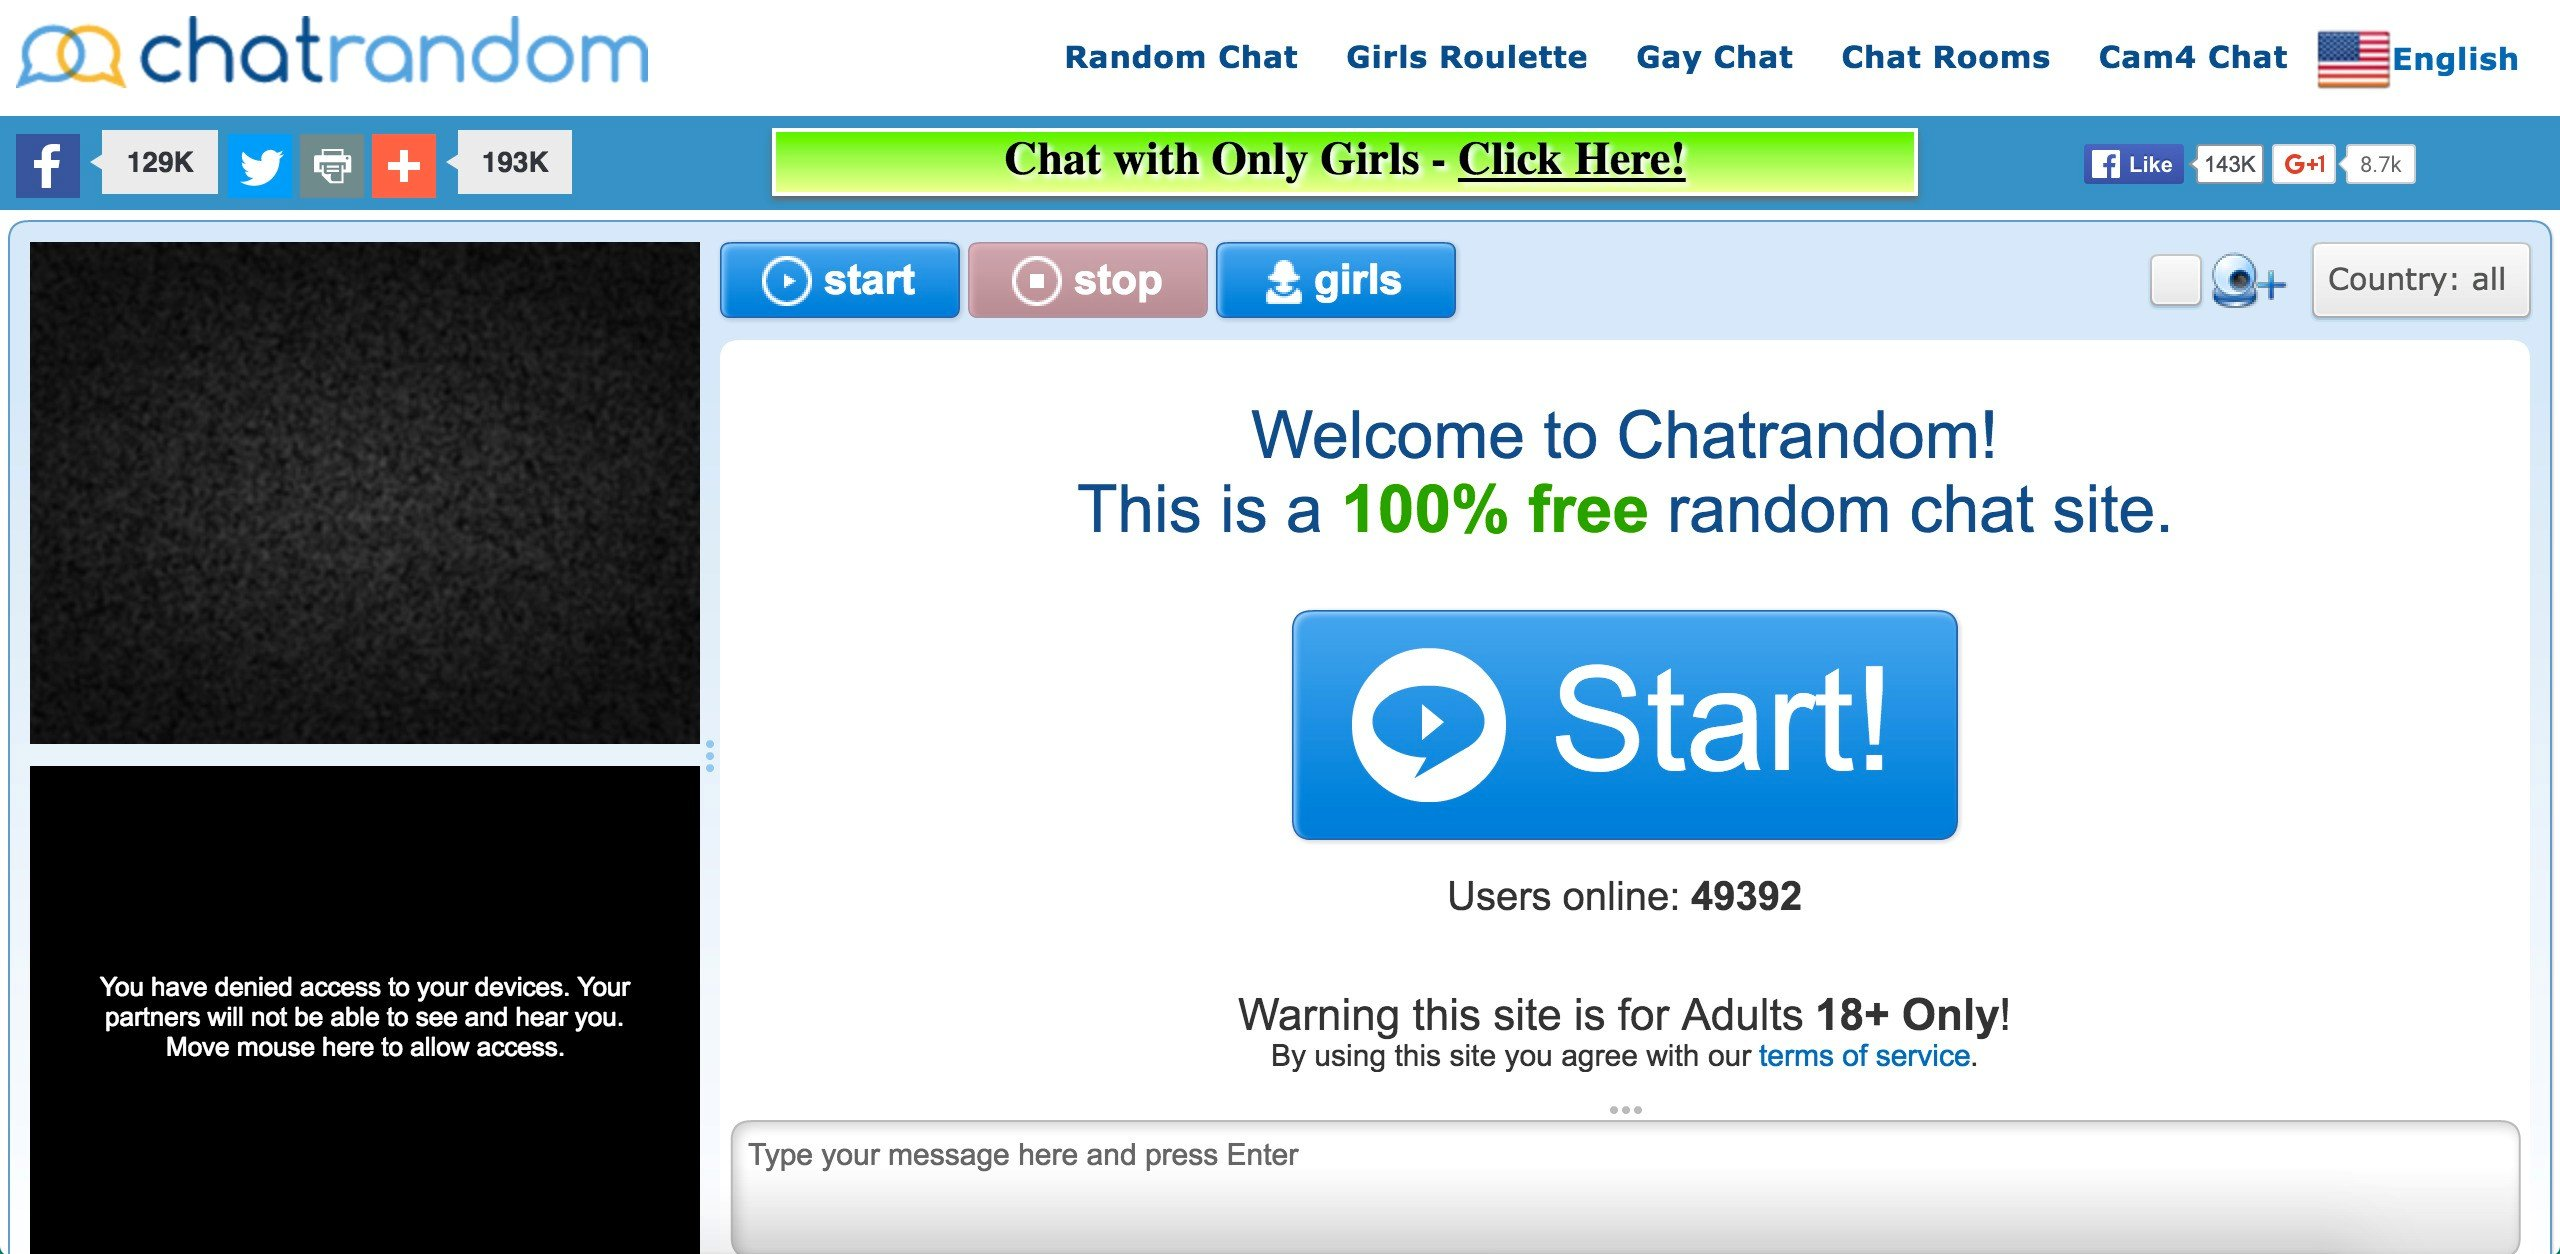 chatroulette random alternative